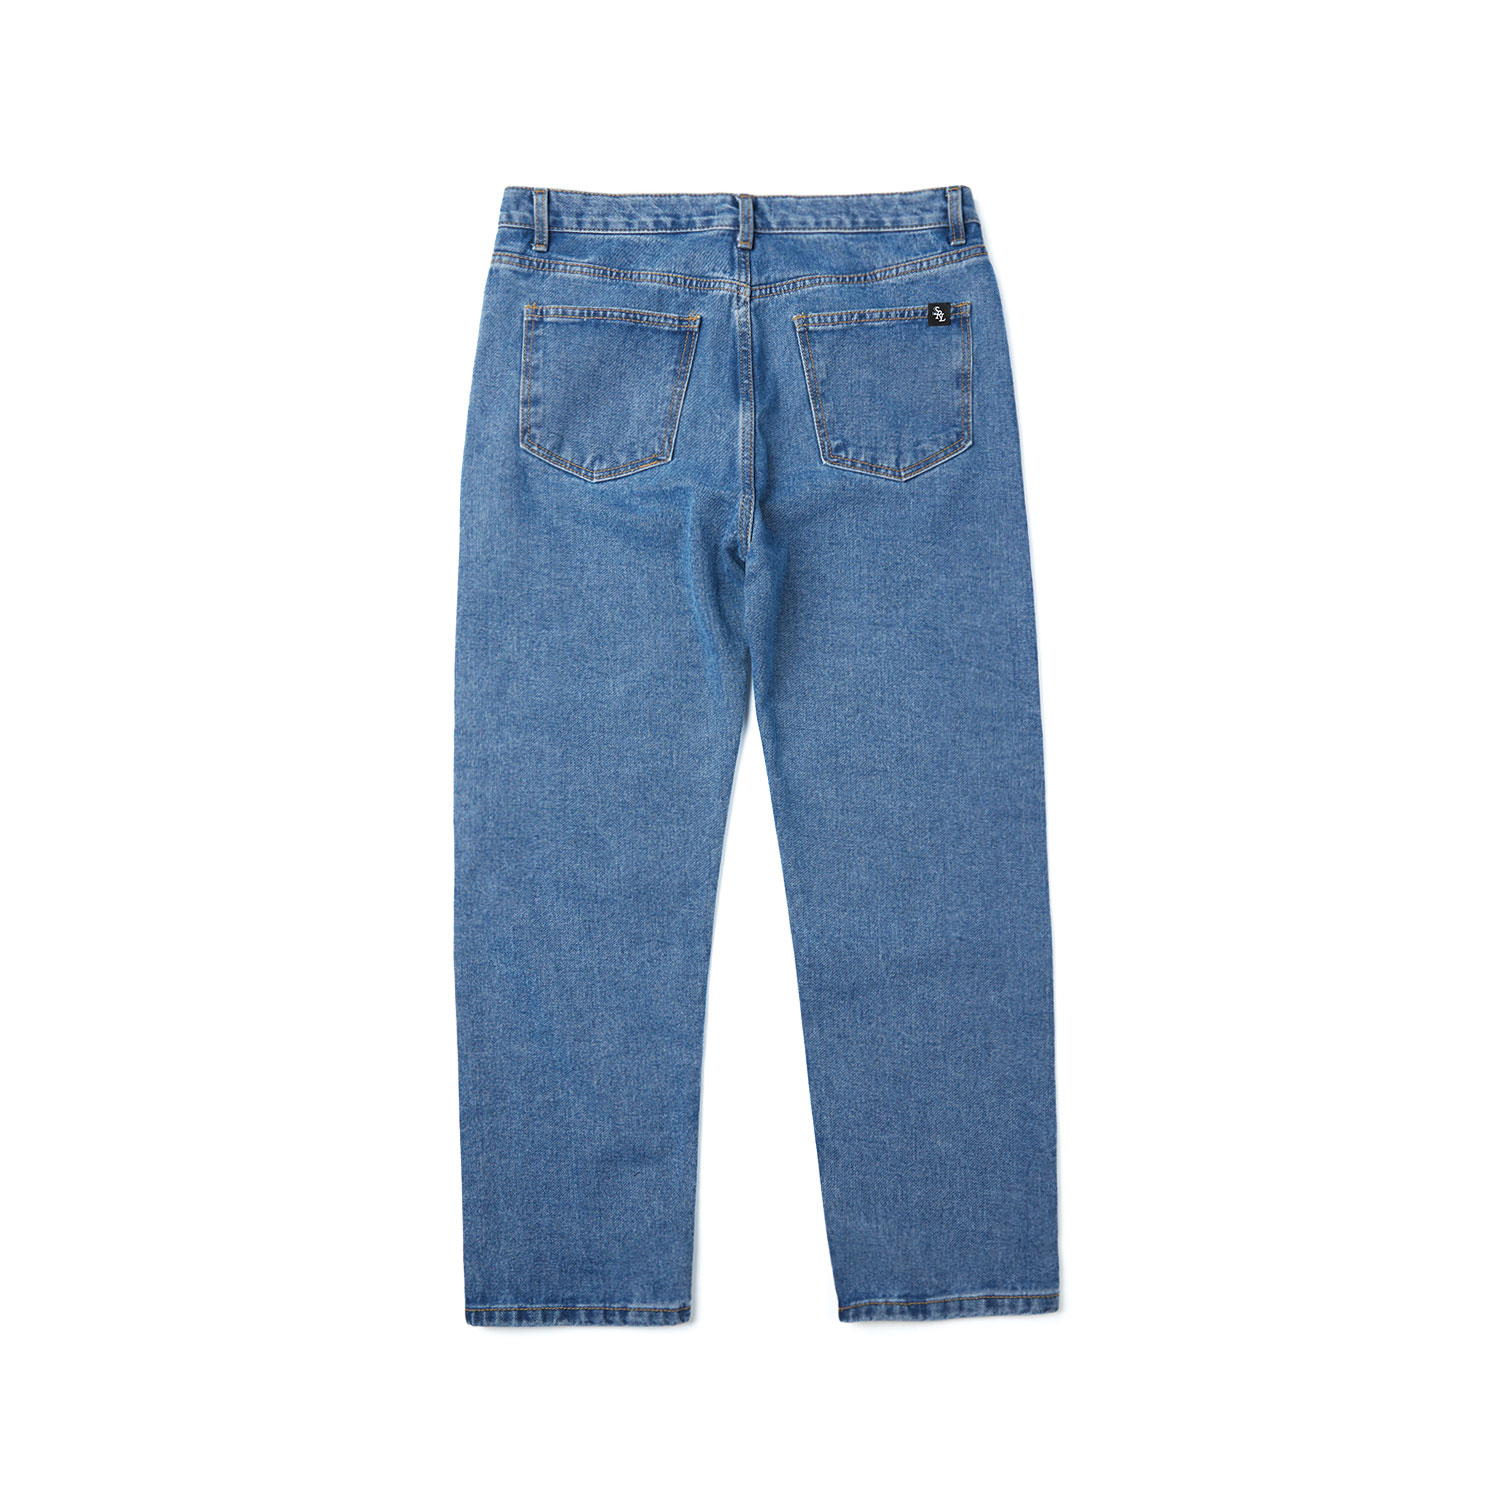 western denim pants / indigo